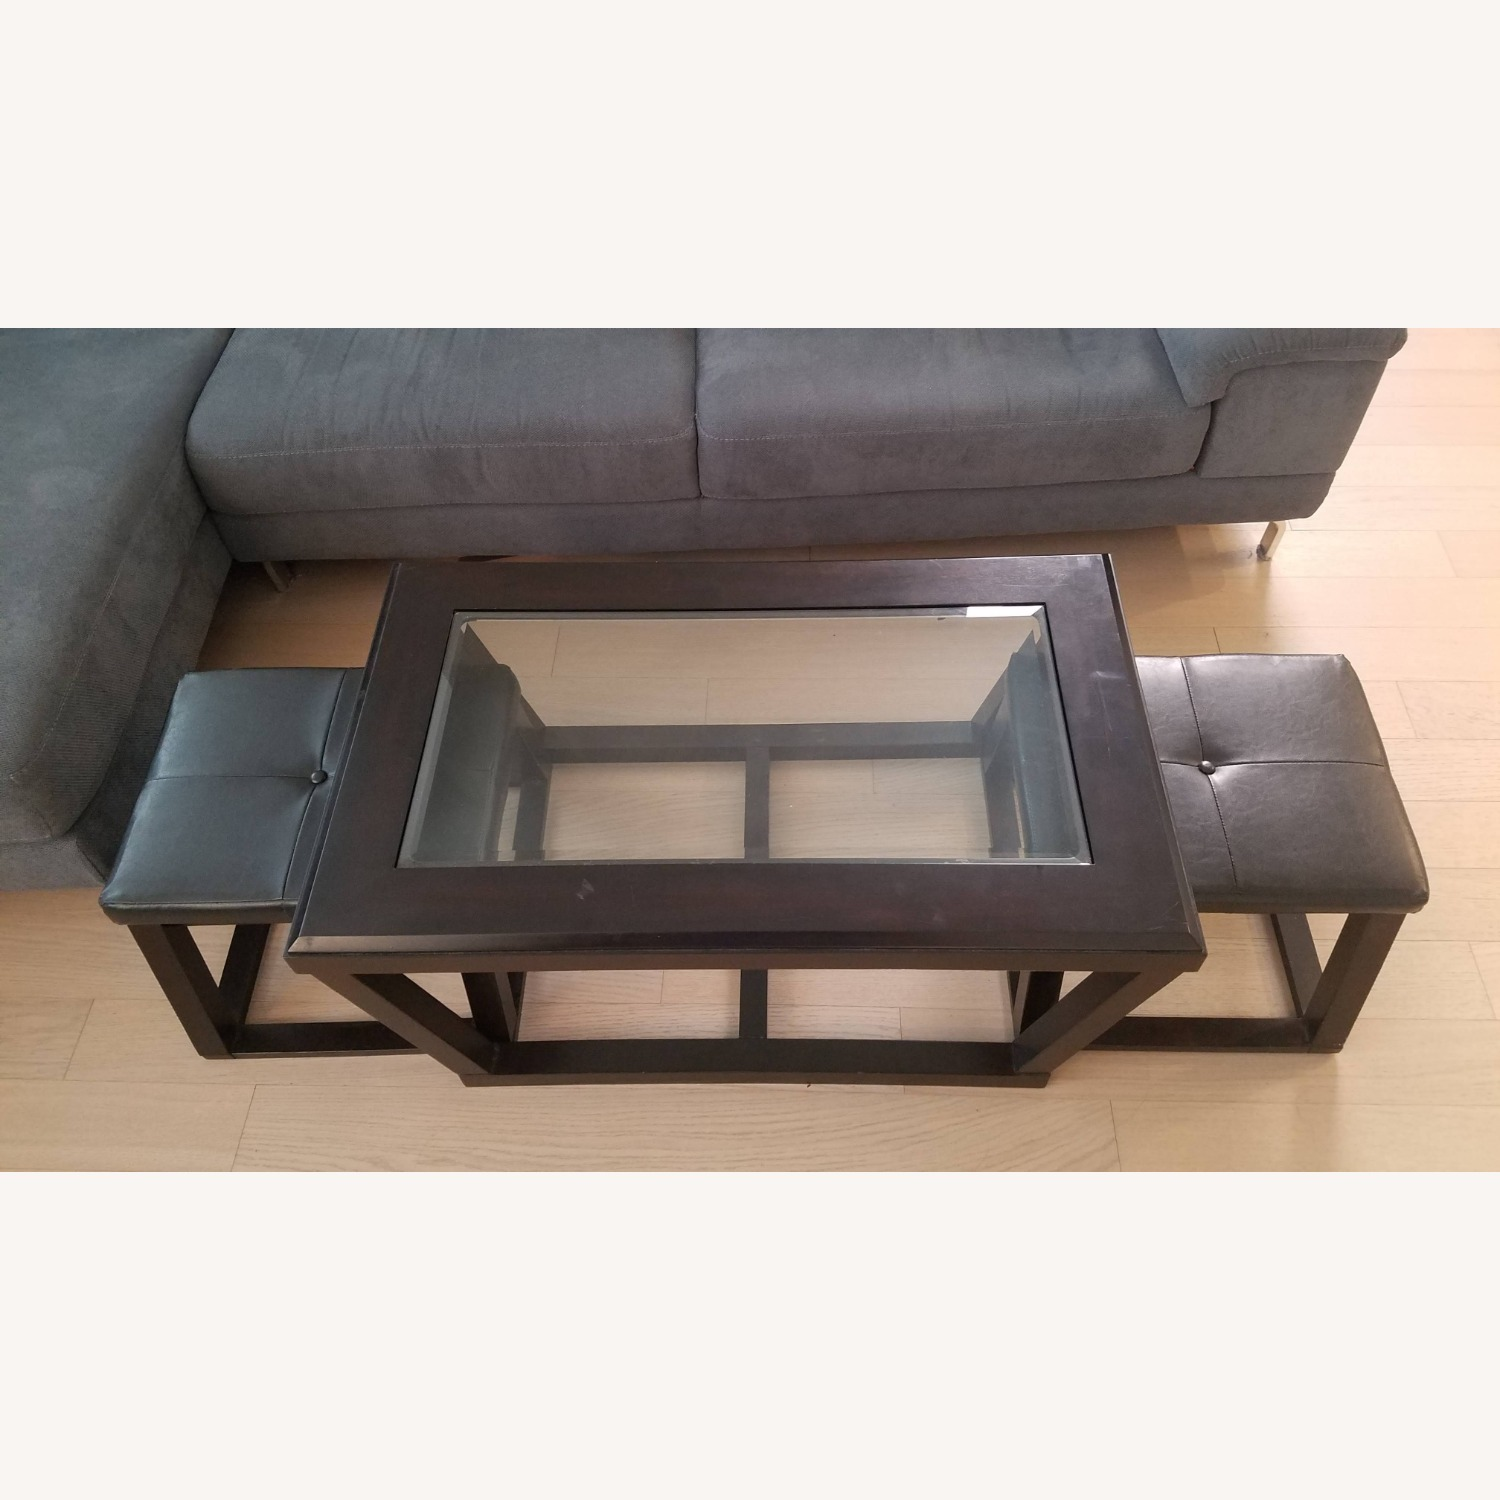 Black Wood and Glass Coffee Table with 2 Ottomans - image-2